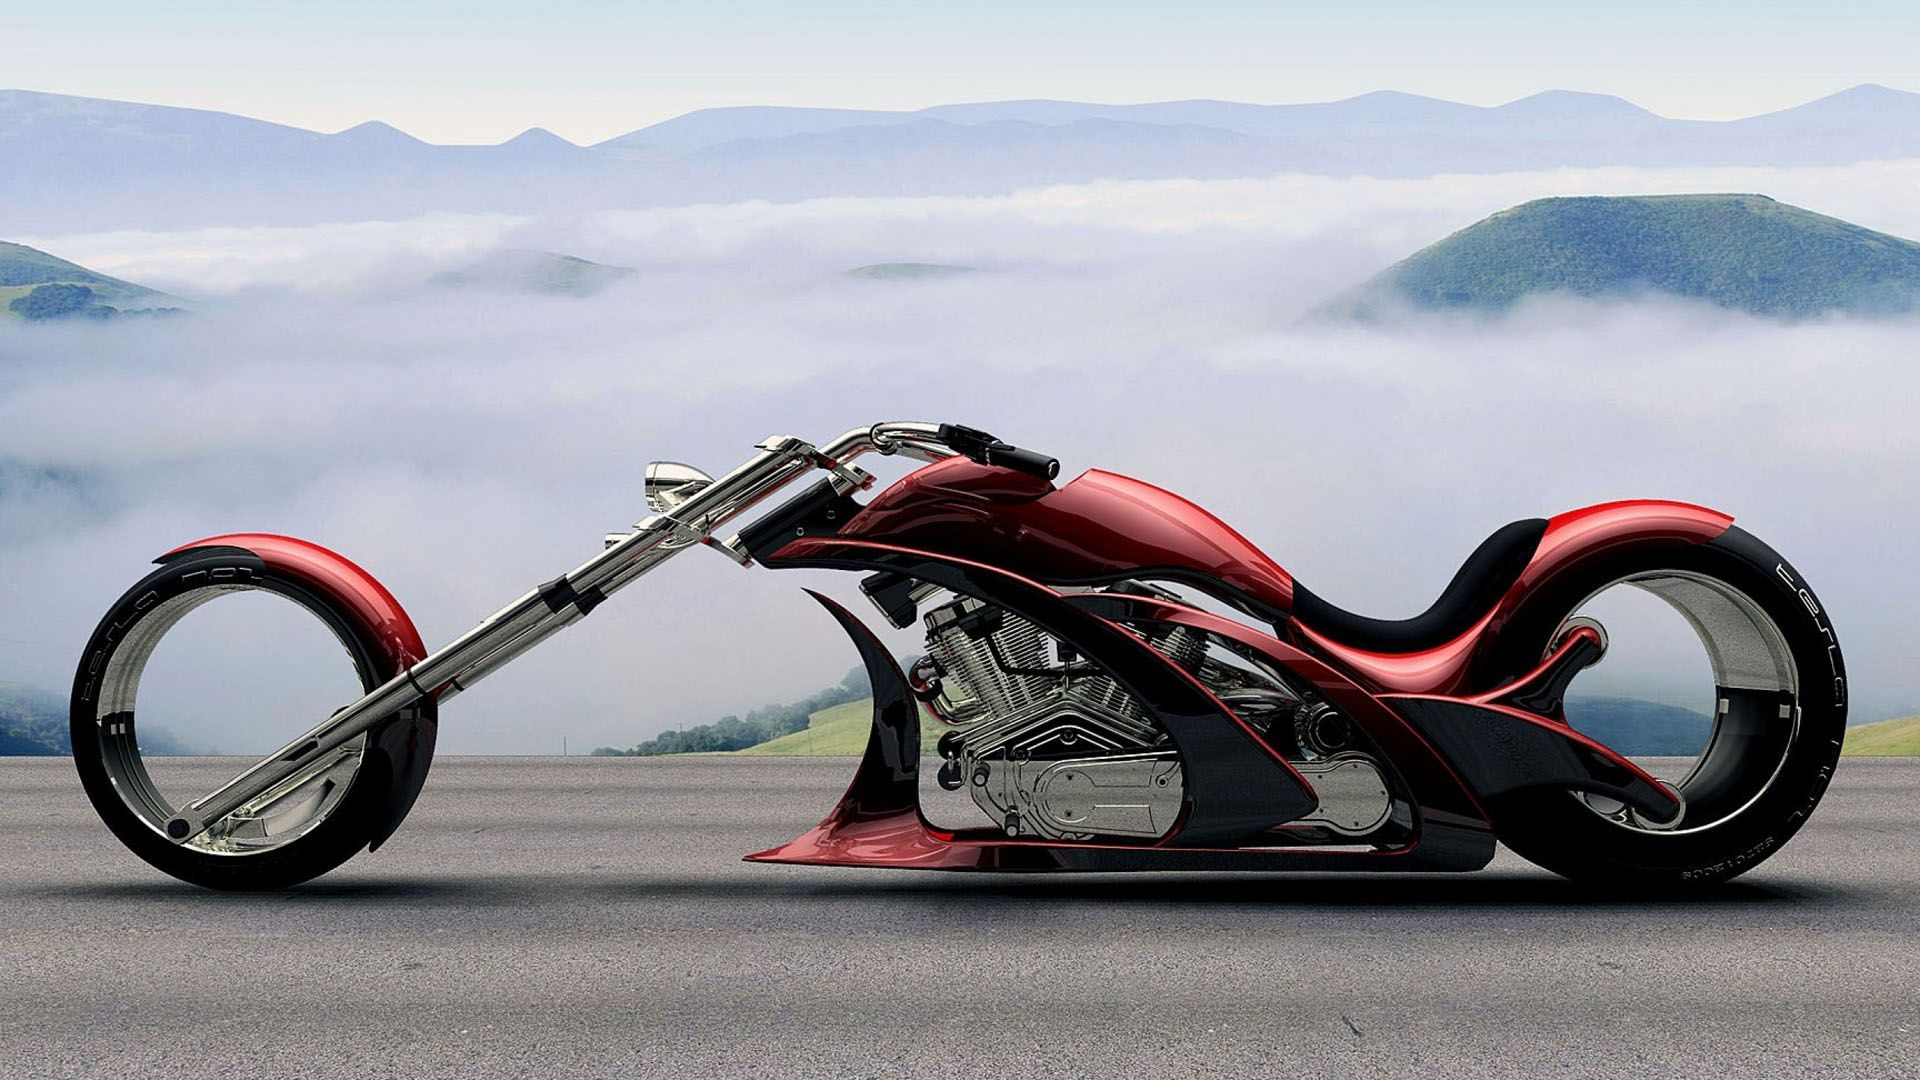 future cars | bike-wallpapers-future-chopper-hd-bike-wallpaper